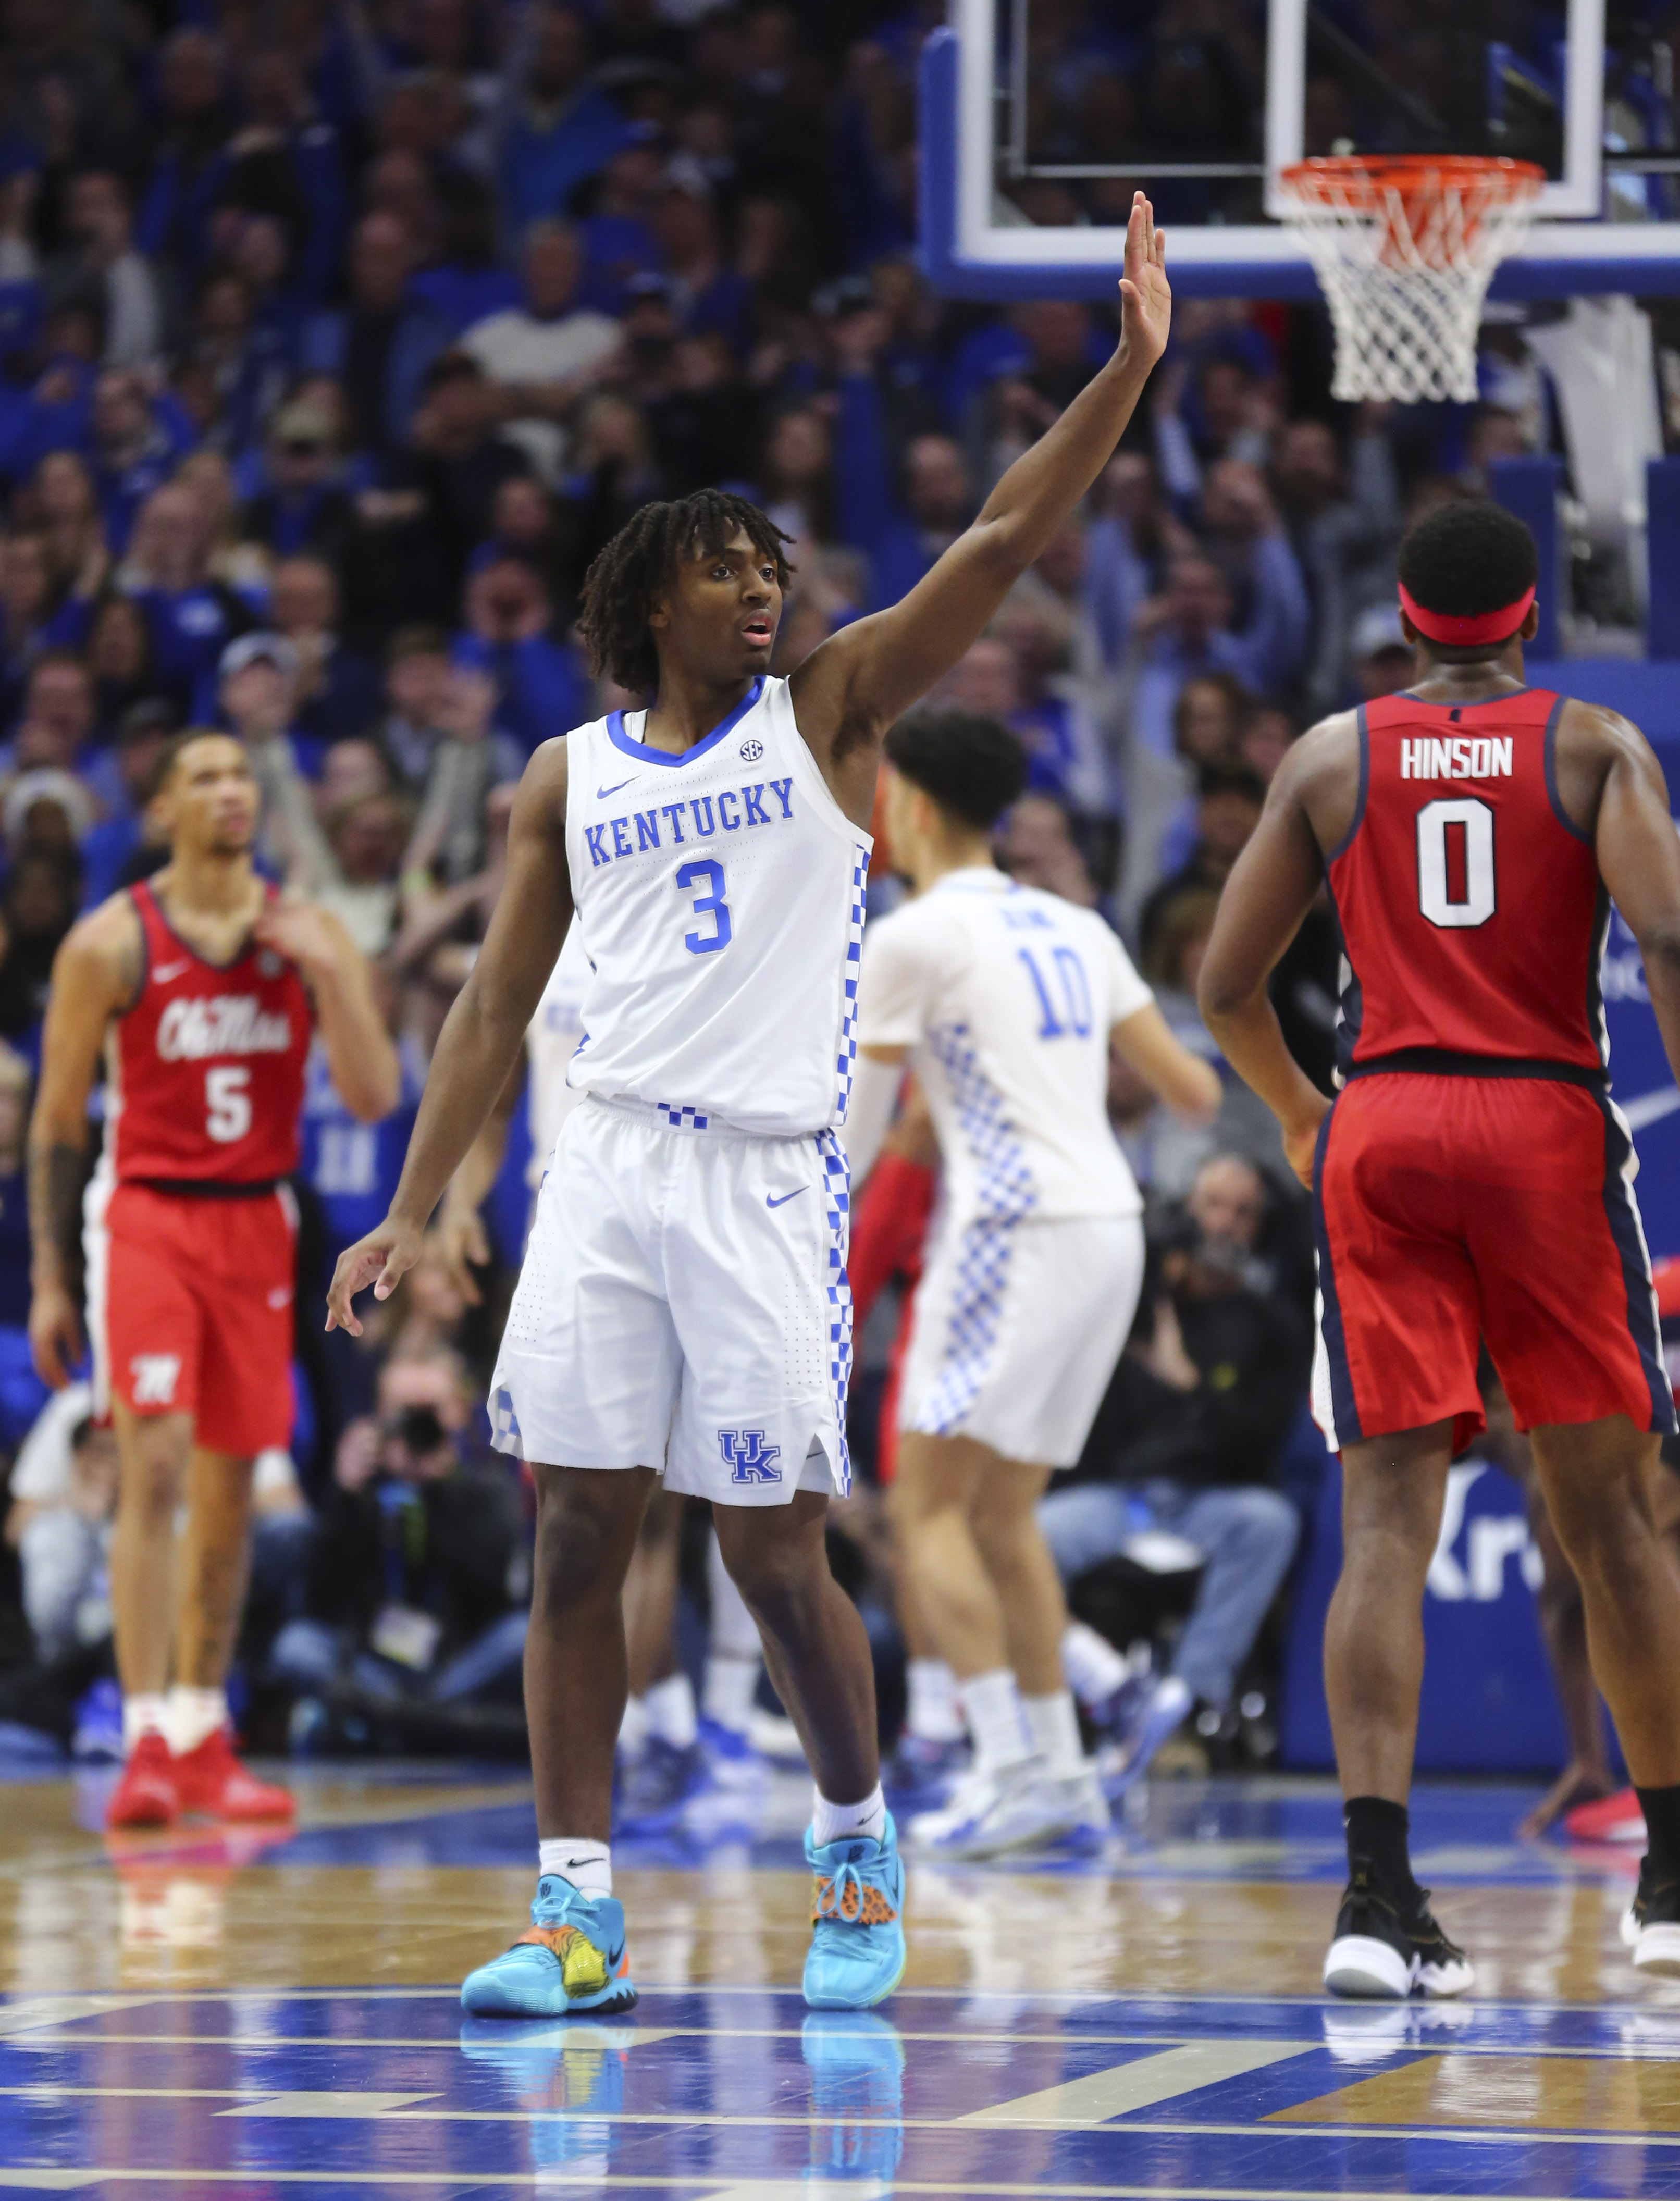 Kentucky Wildcats guard Tyrese Maxey celebrates during the game against the Ole Miss Rebels in the second half at Rupp Arena.